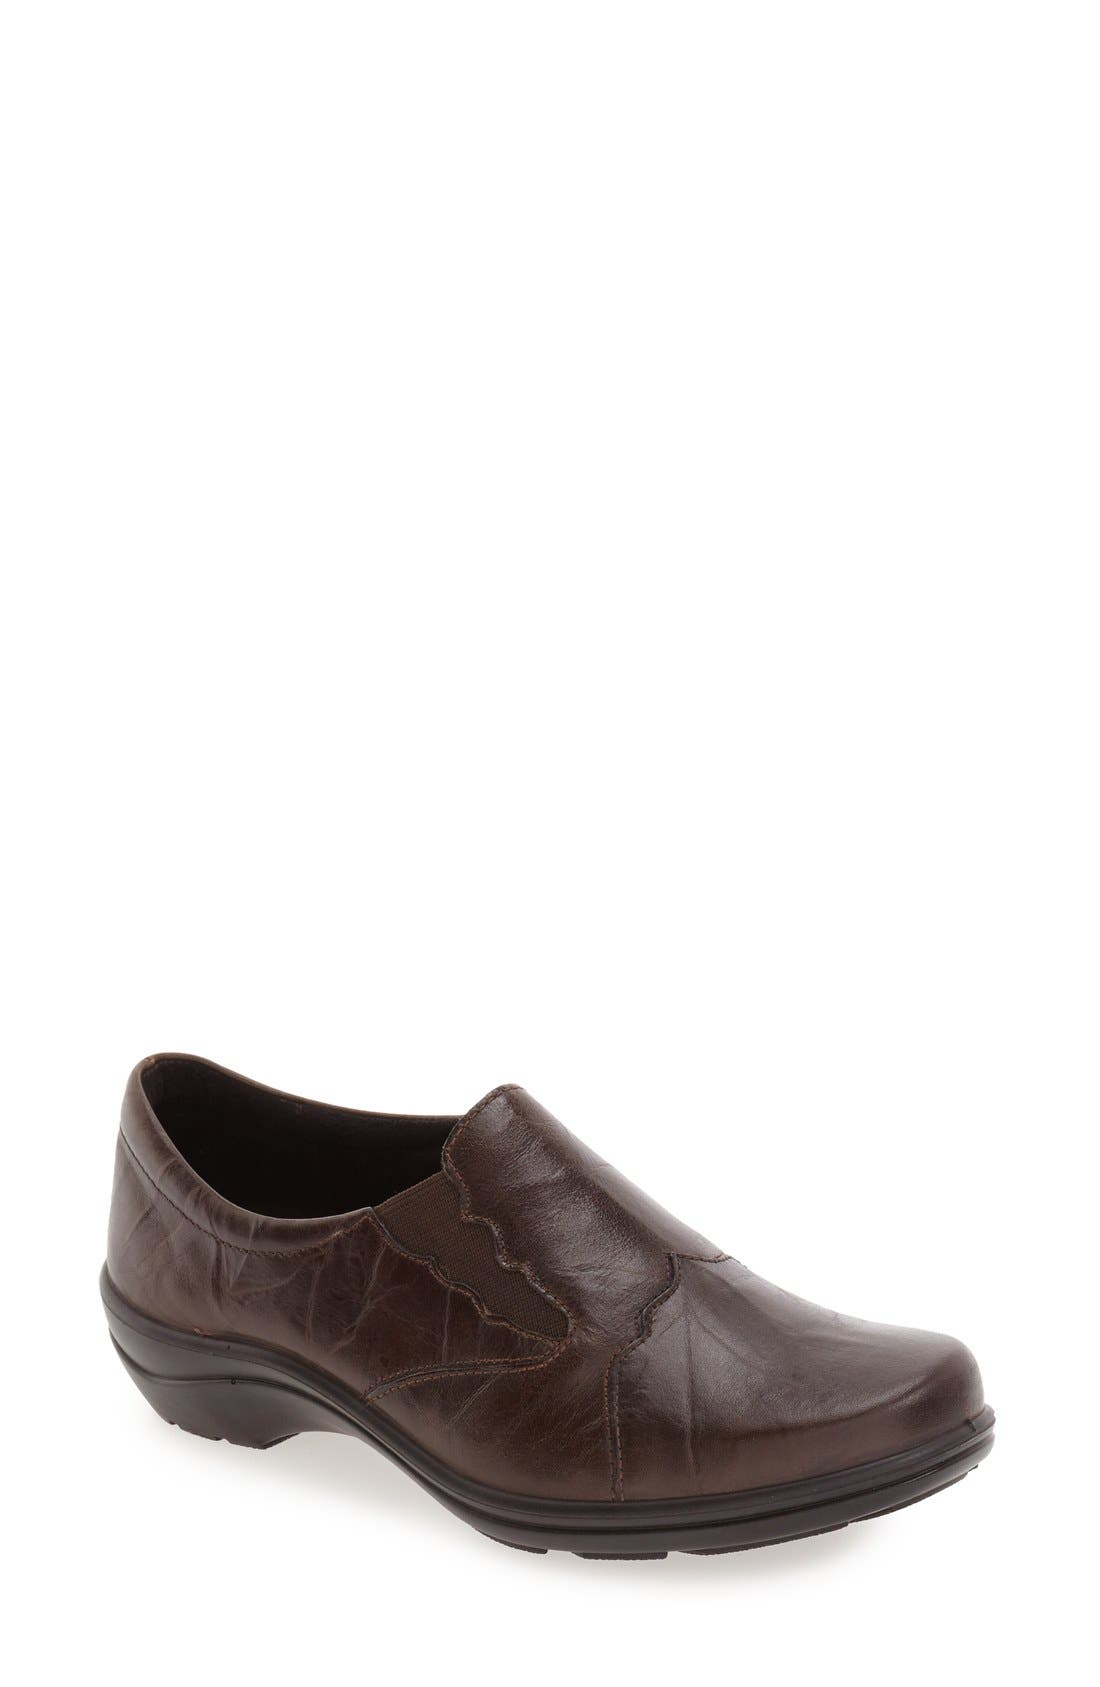 'Cassie 24' Flat,                             Main thumbnail 1, color,                             Tartuffo Leather